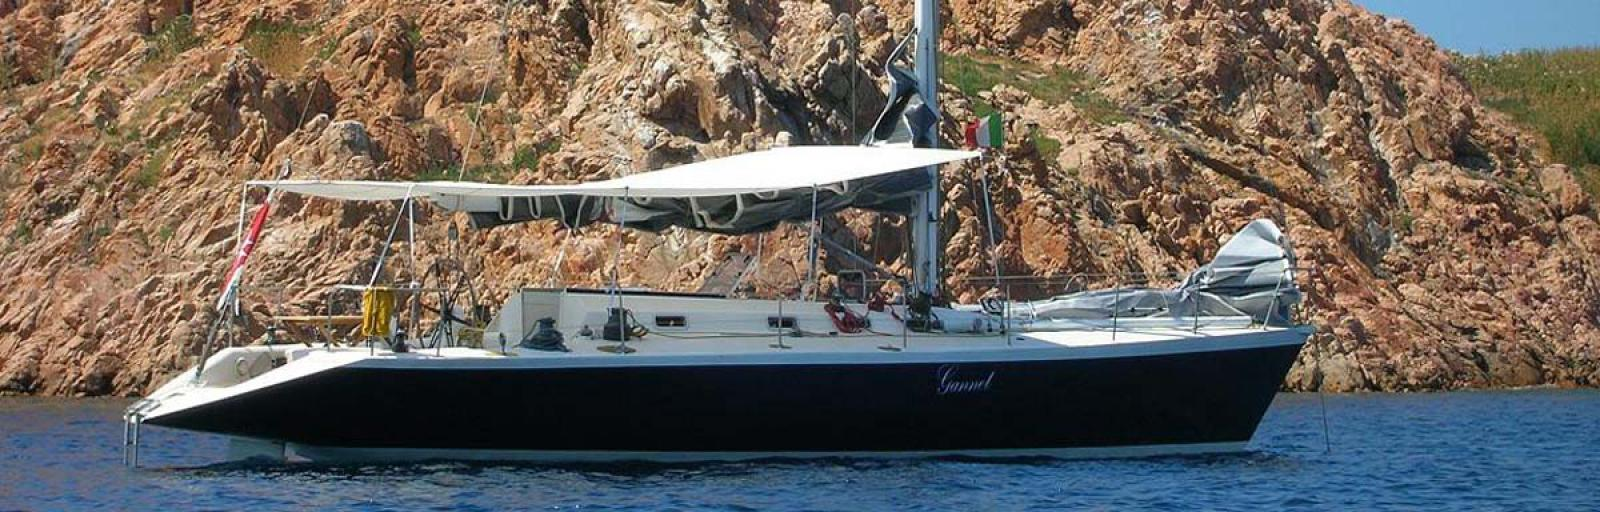 AYC Yachtbrokers - FRERS 48